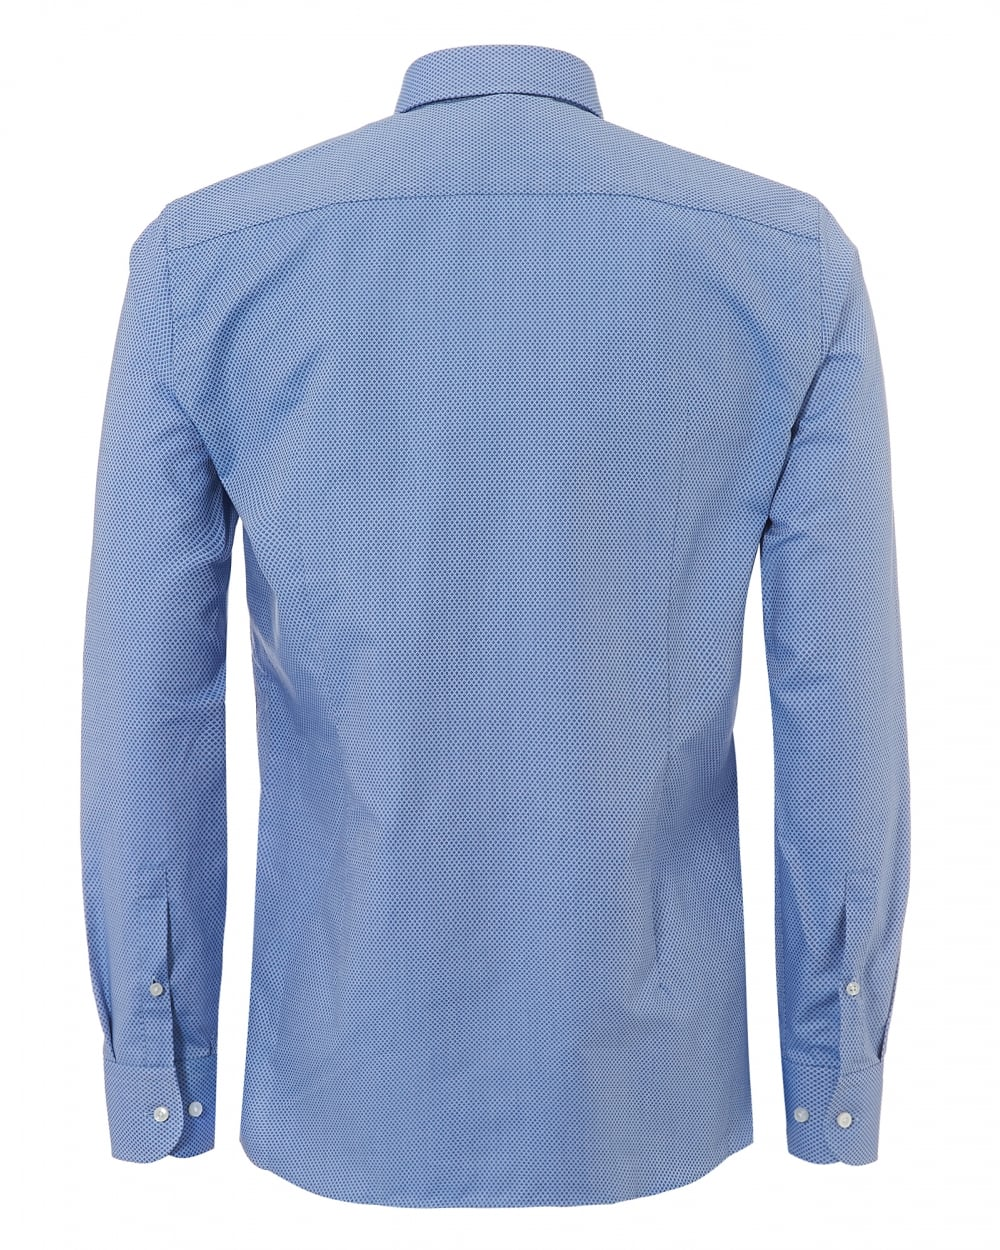 e593e8a7 Hugo Boss Classic Mens Jerris Woven Diamond Slim Fit Sky Blue Shirt